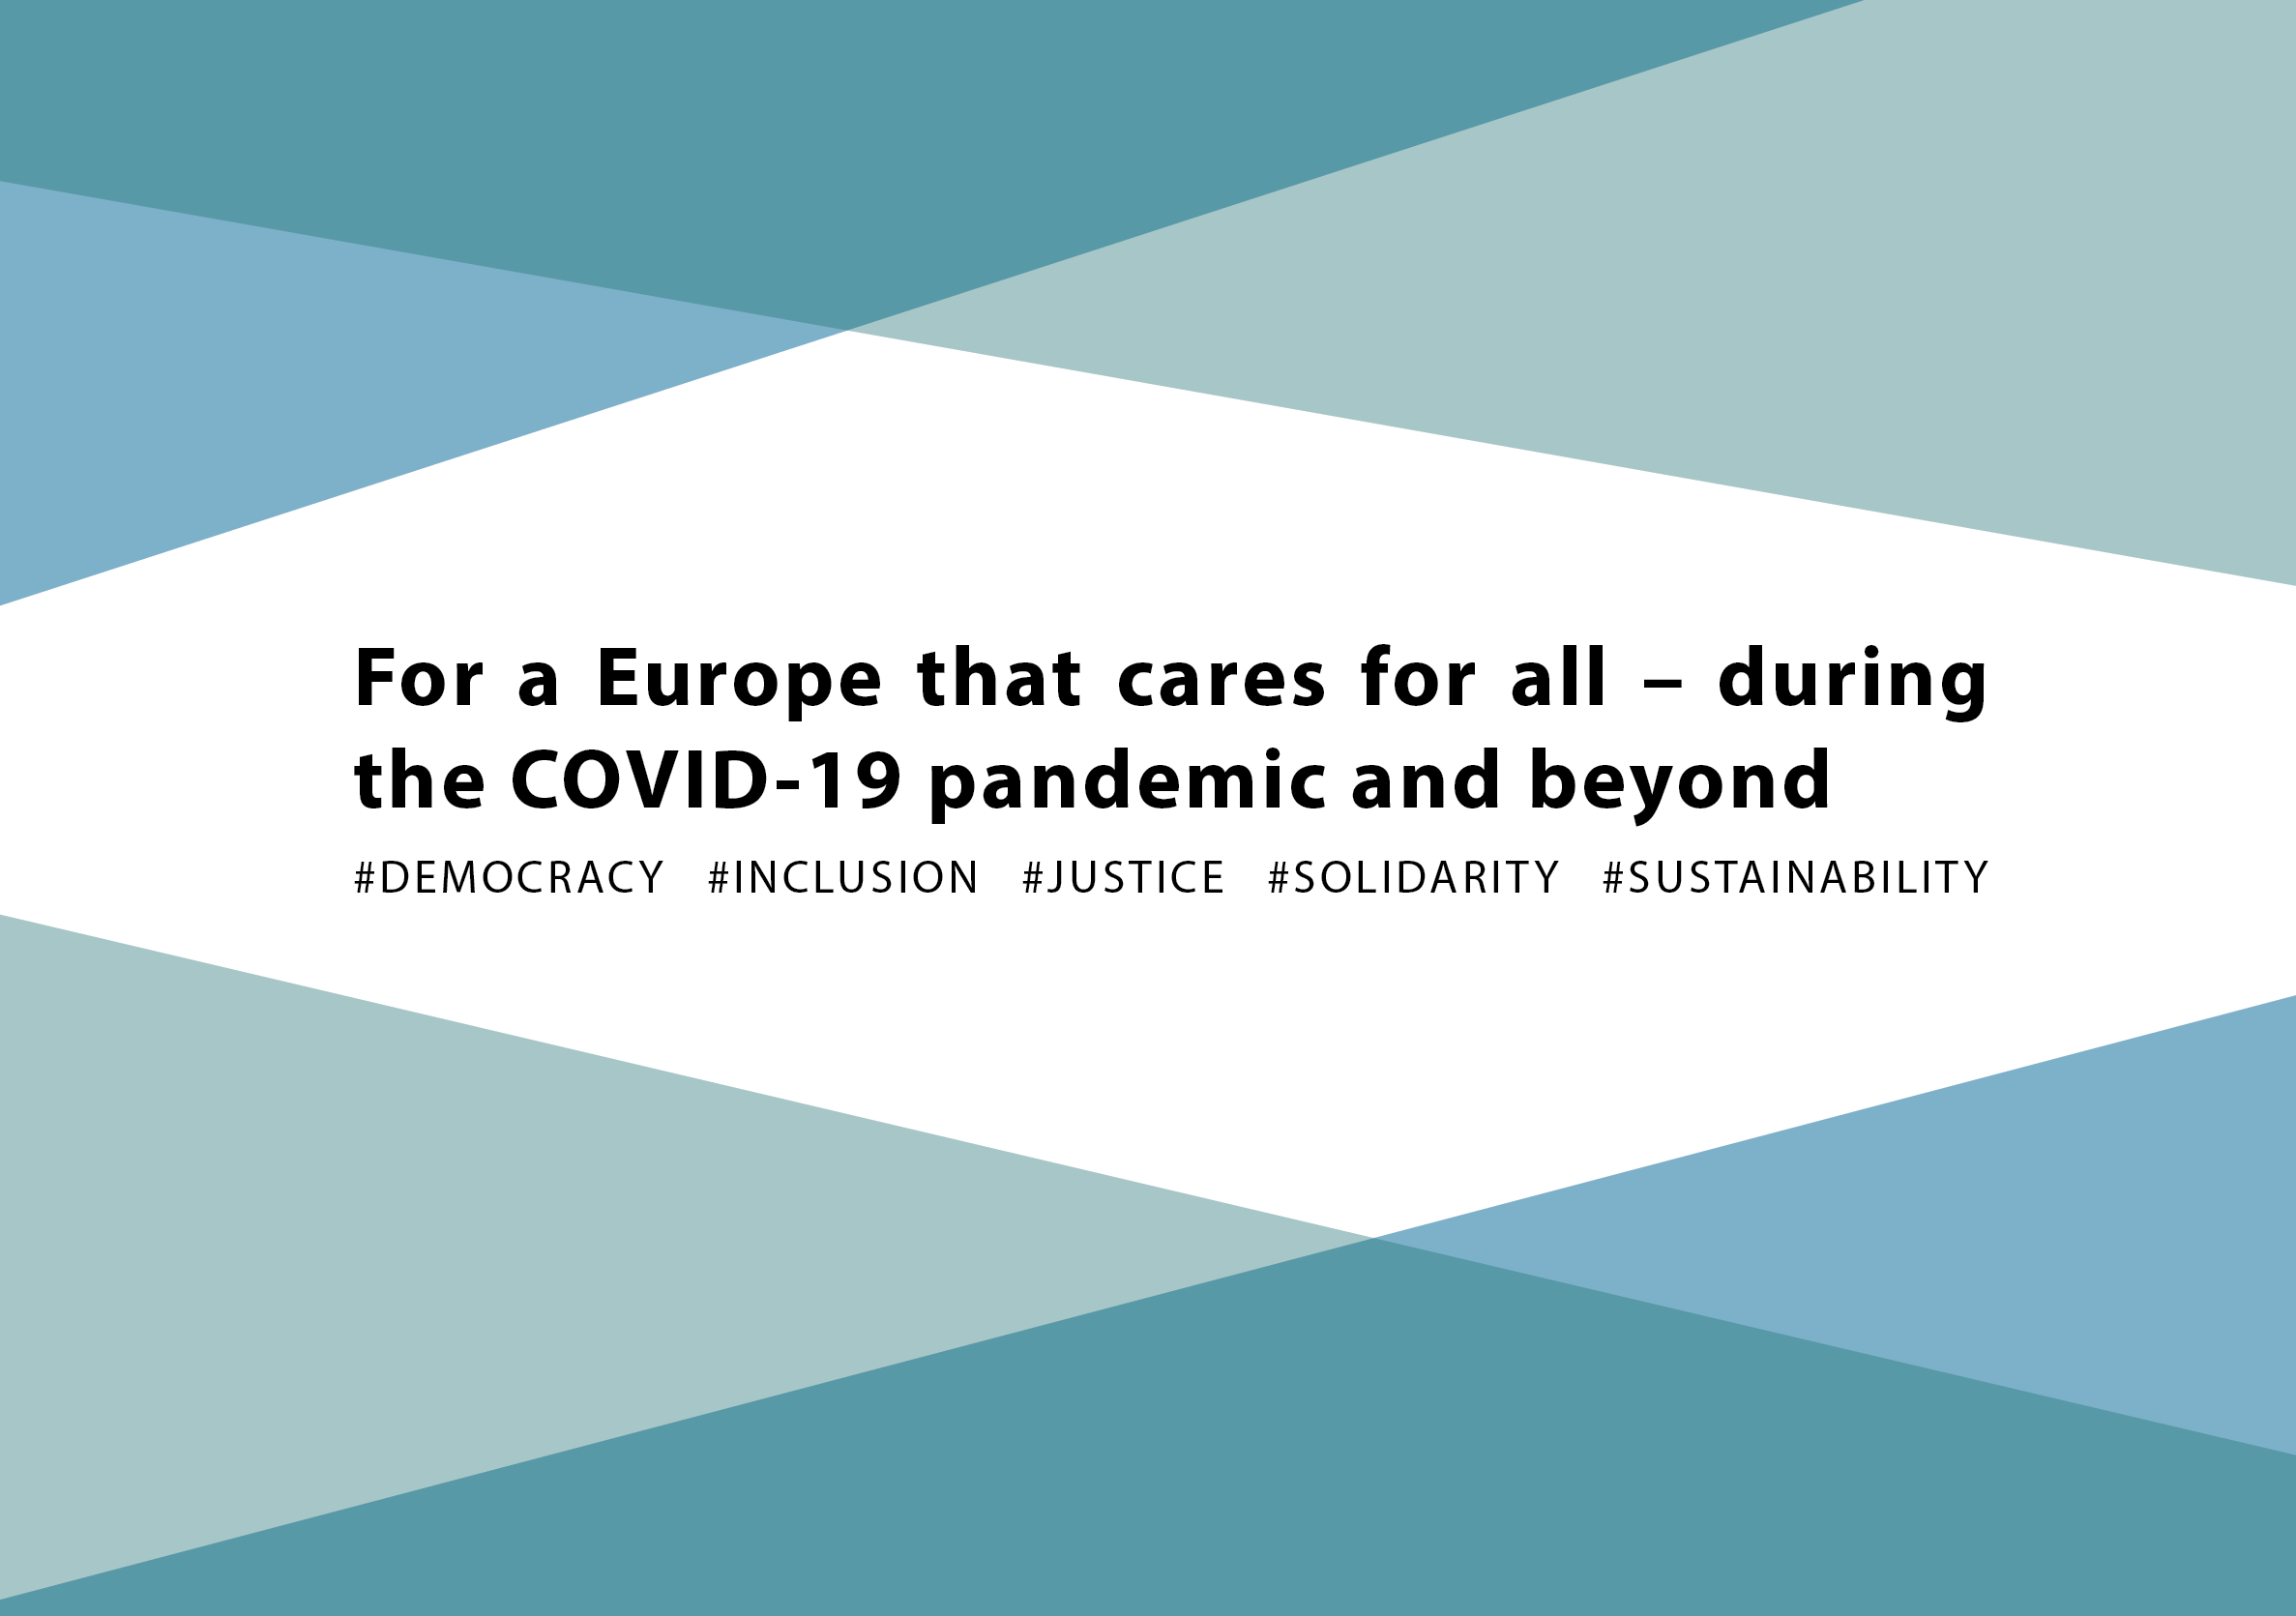 CIVIL SOCIETY & TRADE UNION STATEMENT For a Europe that cares for all – during the COVID-19 pandemic and beyond